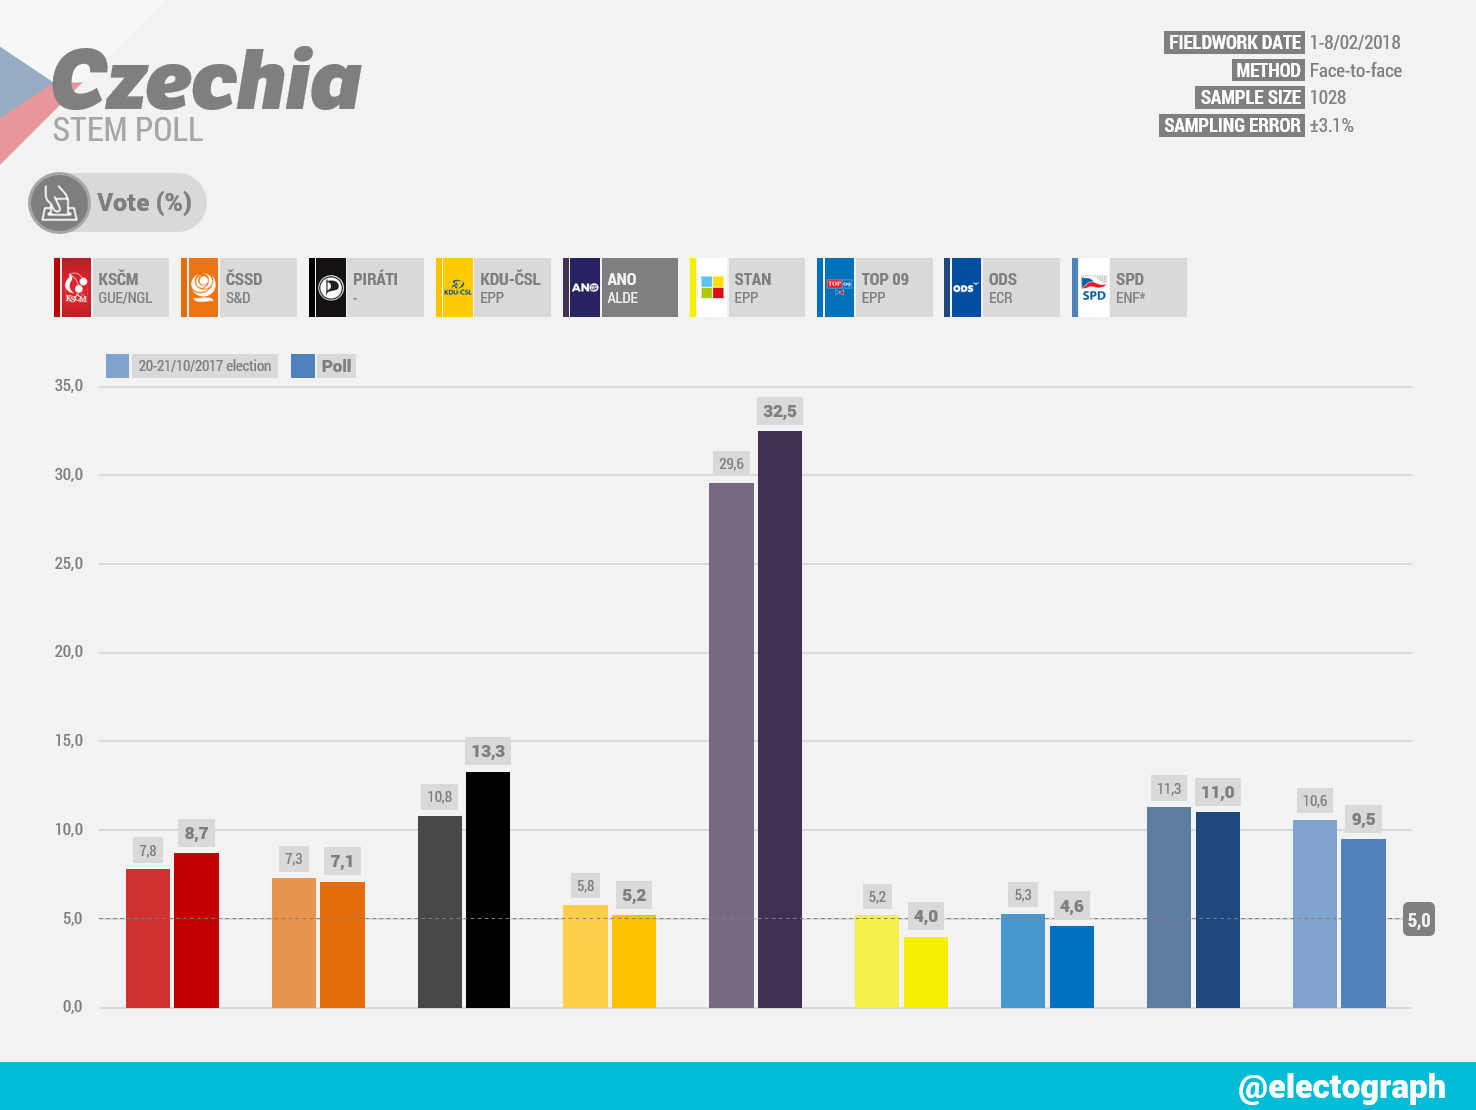 CZECHIA STEM poll chart, February 2018